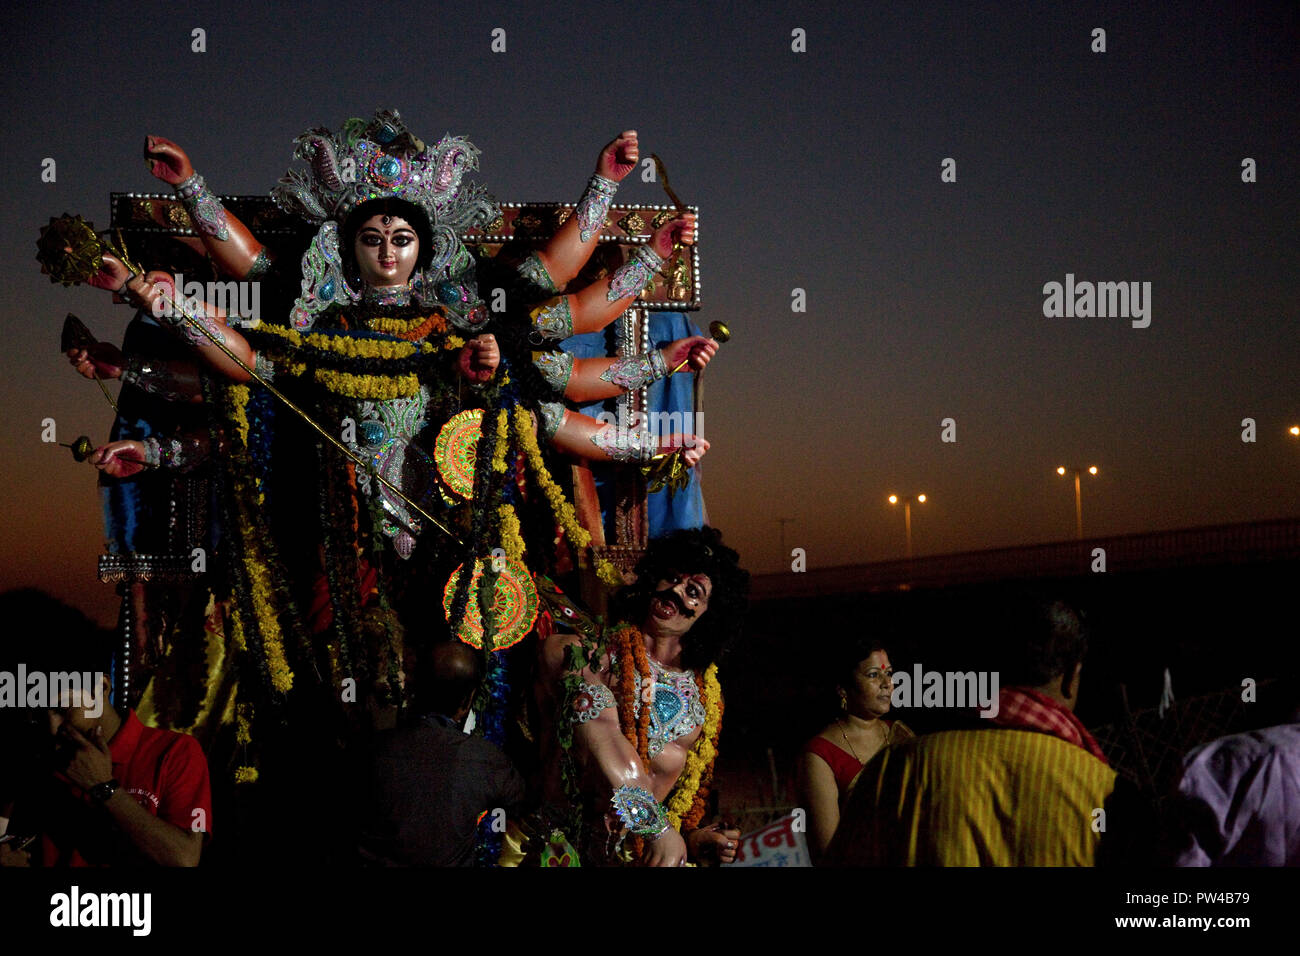 Dashami Stock Photos & Dashami Stock Images - Alamy